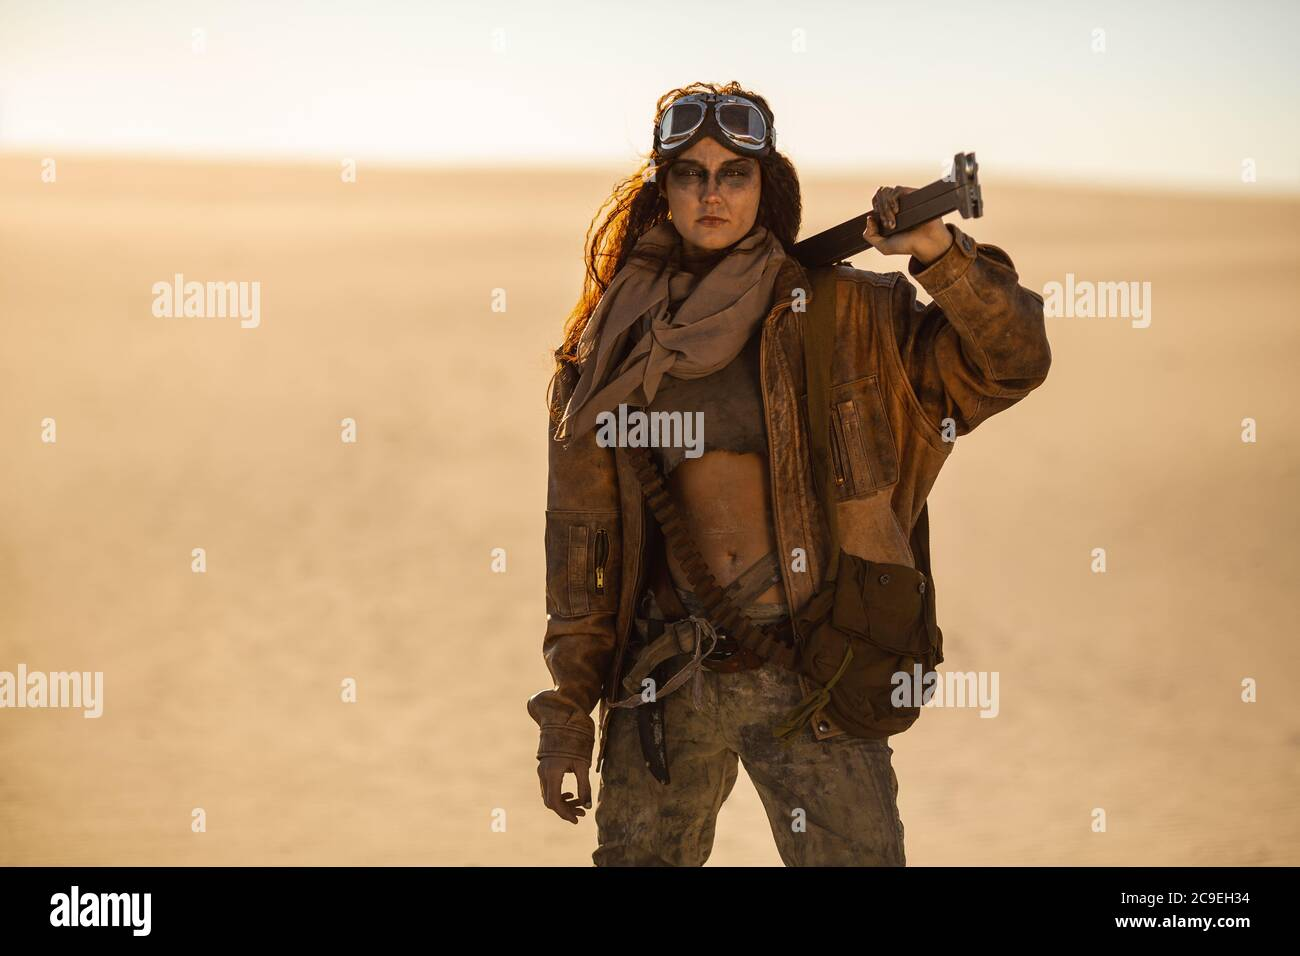 Post-apocalyptic woman with weapon outdoors. Young slim girl warrior in shabby clothes holding sword standing in a confident pose looking at camera . Nuclear post-apocalypse time. Life after doomsday concept. Desert and dead wasteland on the background. Closeup portrait.